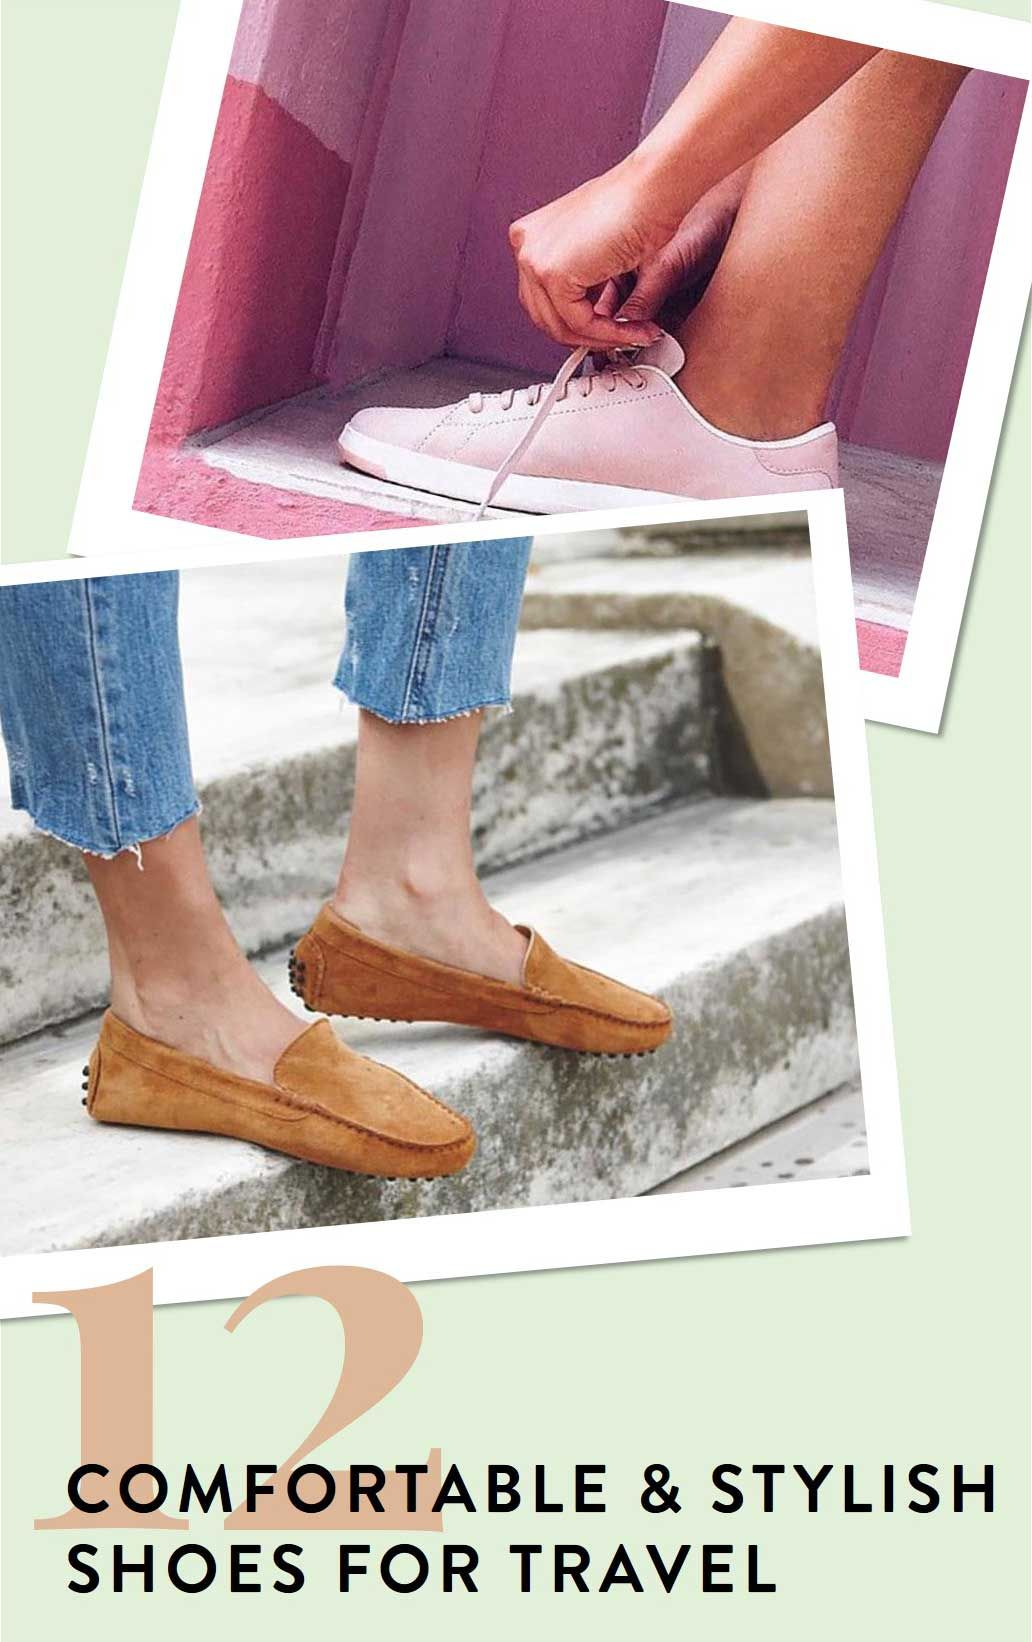 fd598b2b4 12 comfortable travel shoes you'll want for your next vacation! driving  moccasins, sleek sneakers and comfortable walking flats - read more!  #packing